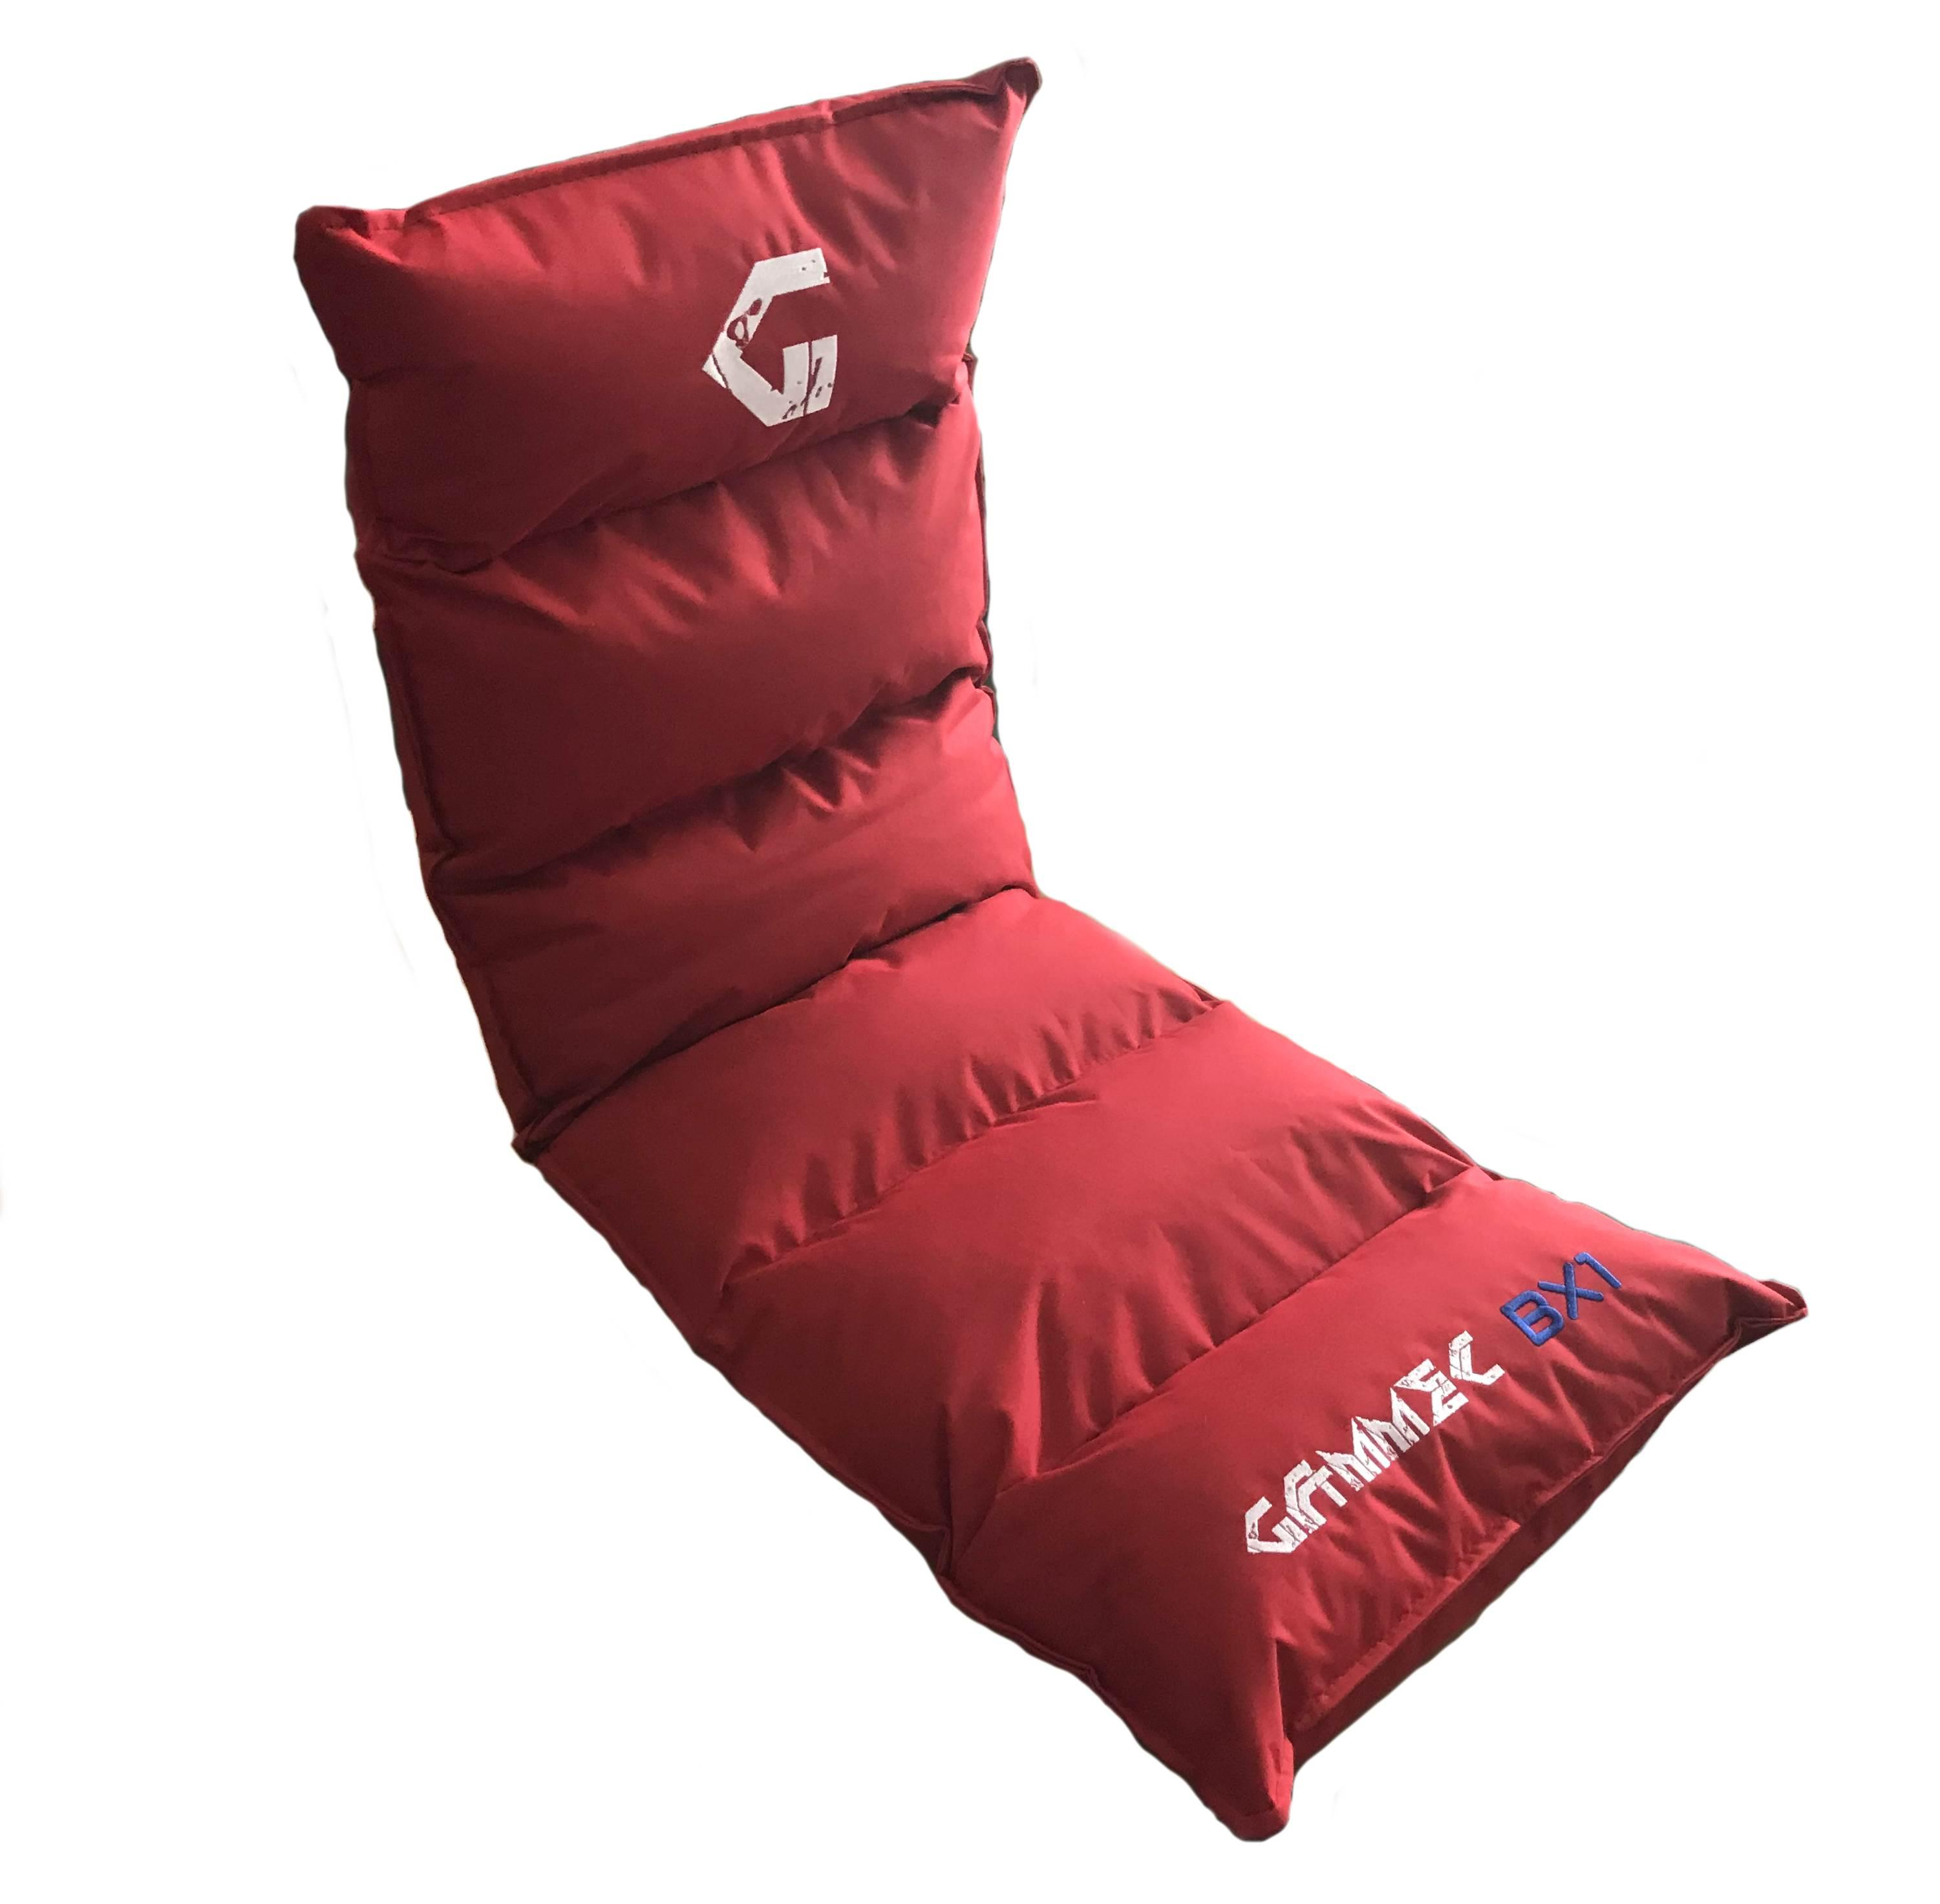 CUSCINO POLTRONA SOFT GAMING reclinabile BX1 (BX1RED) ROSSA